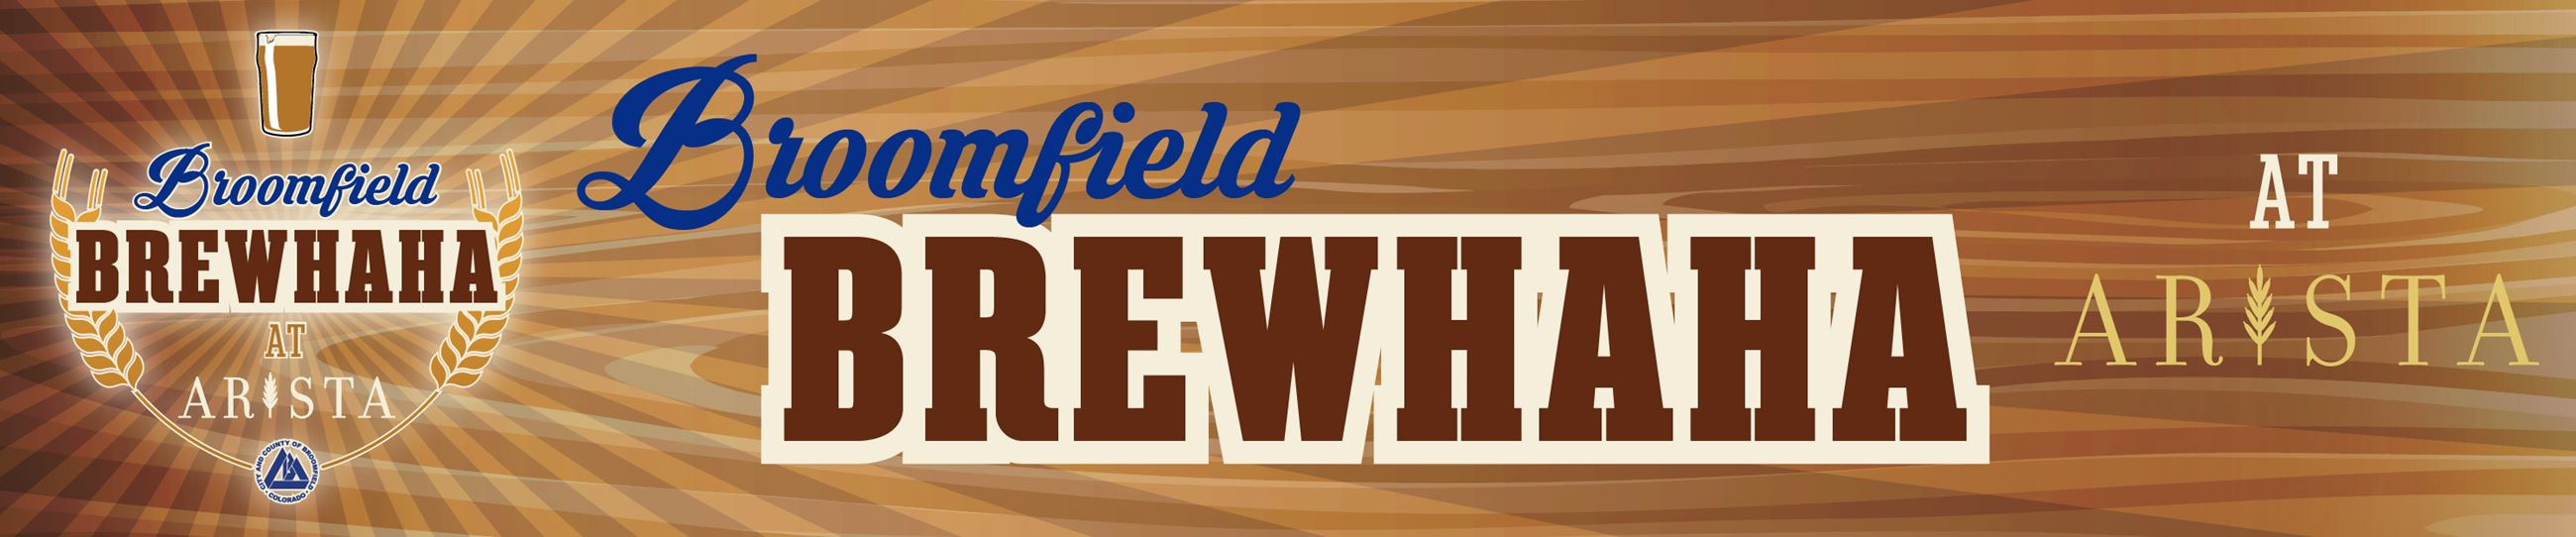 2019 BrewHaHa website header